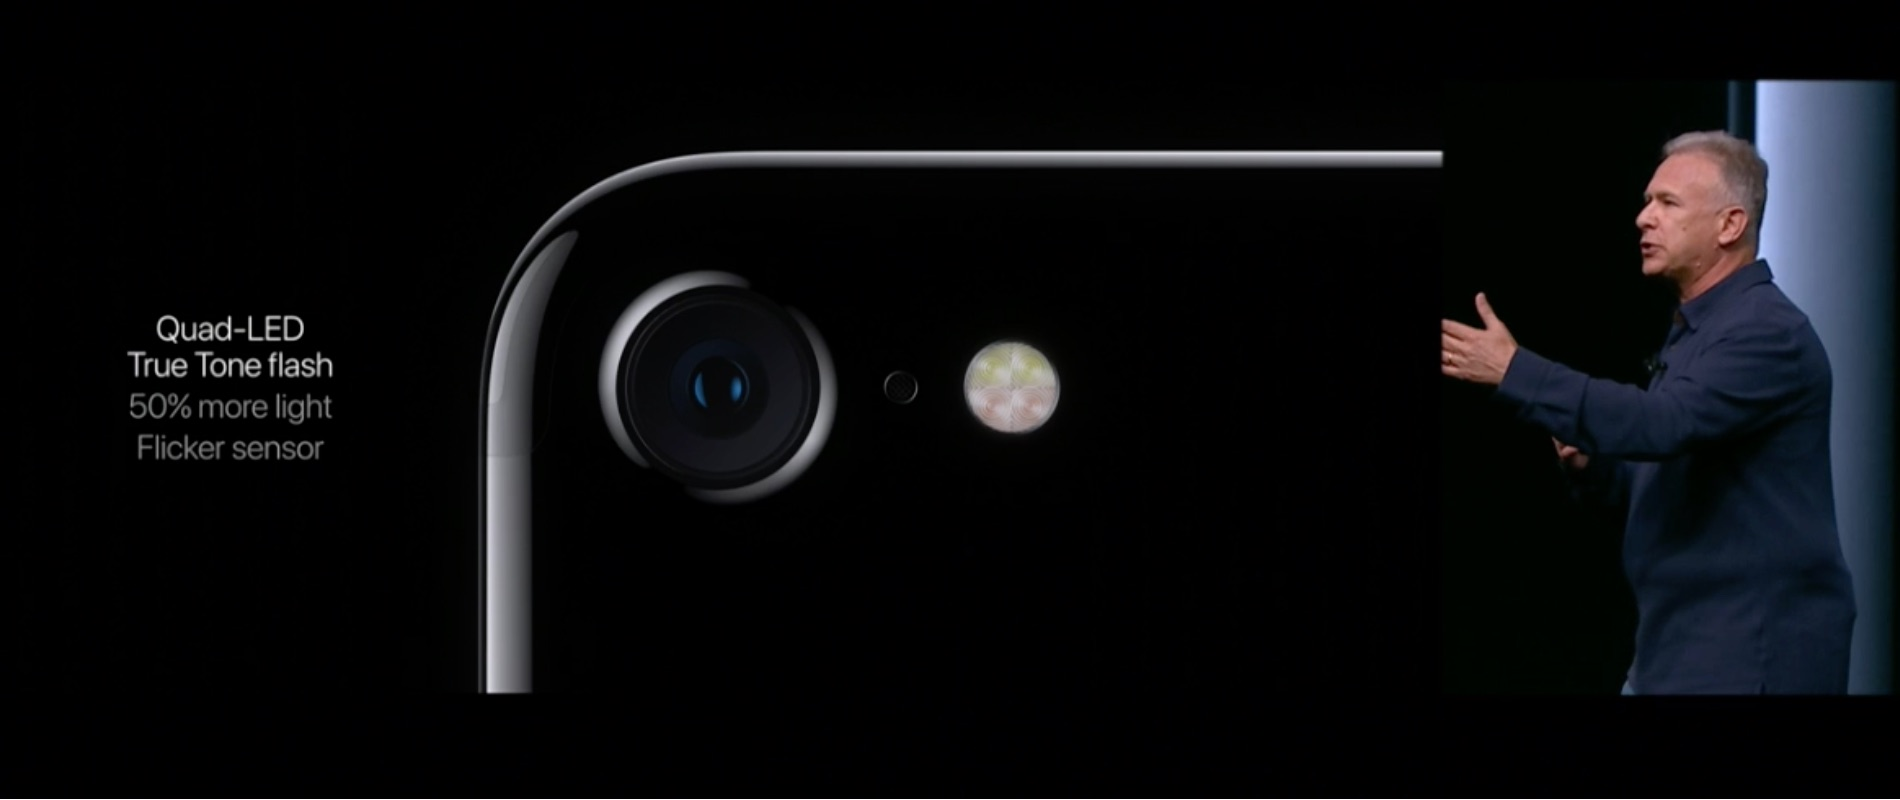 iphone7-plus-special-events-2016-sep-13